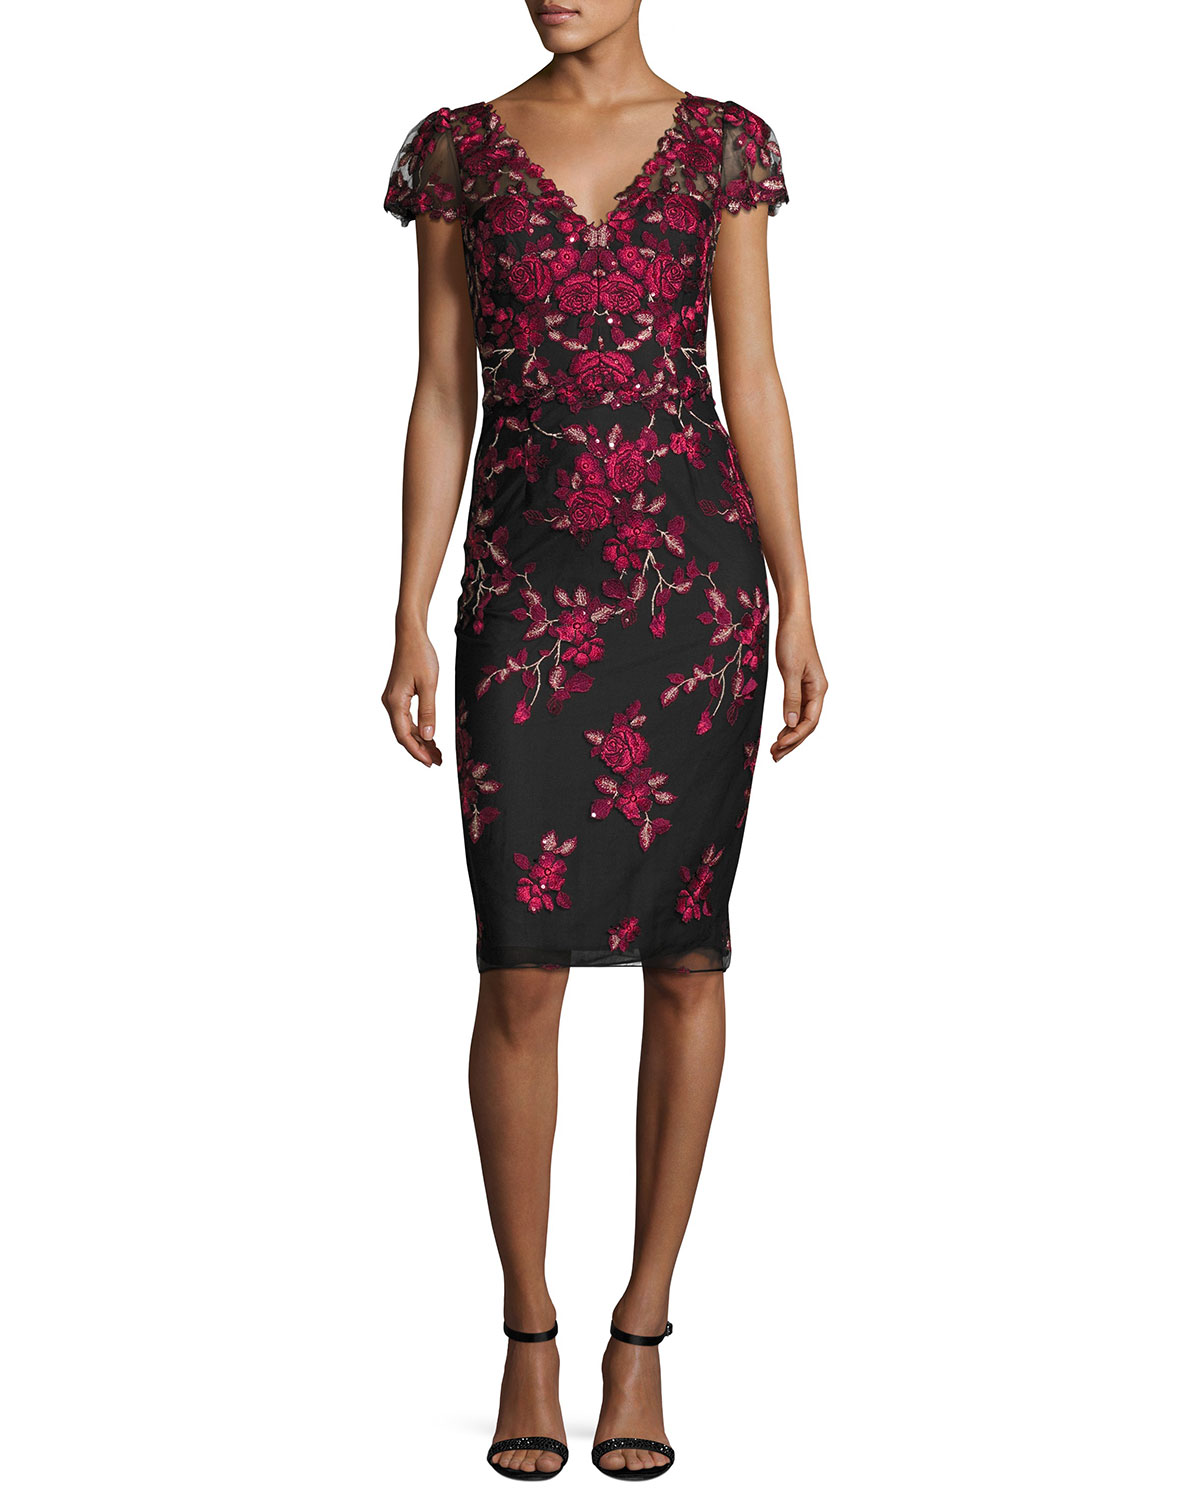 Rose-Embroidered Cap-Sleeve Cocktail Dress, Black